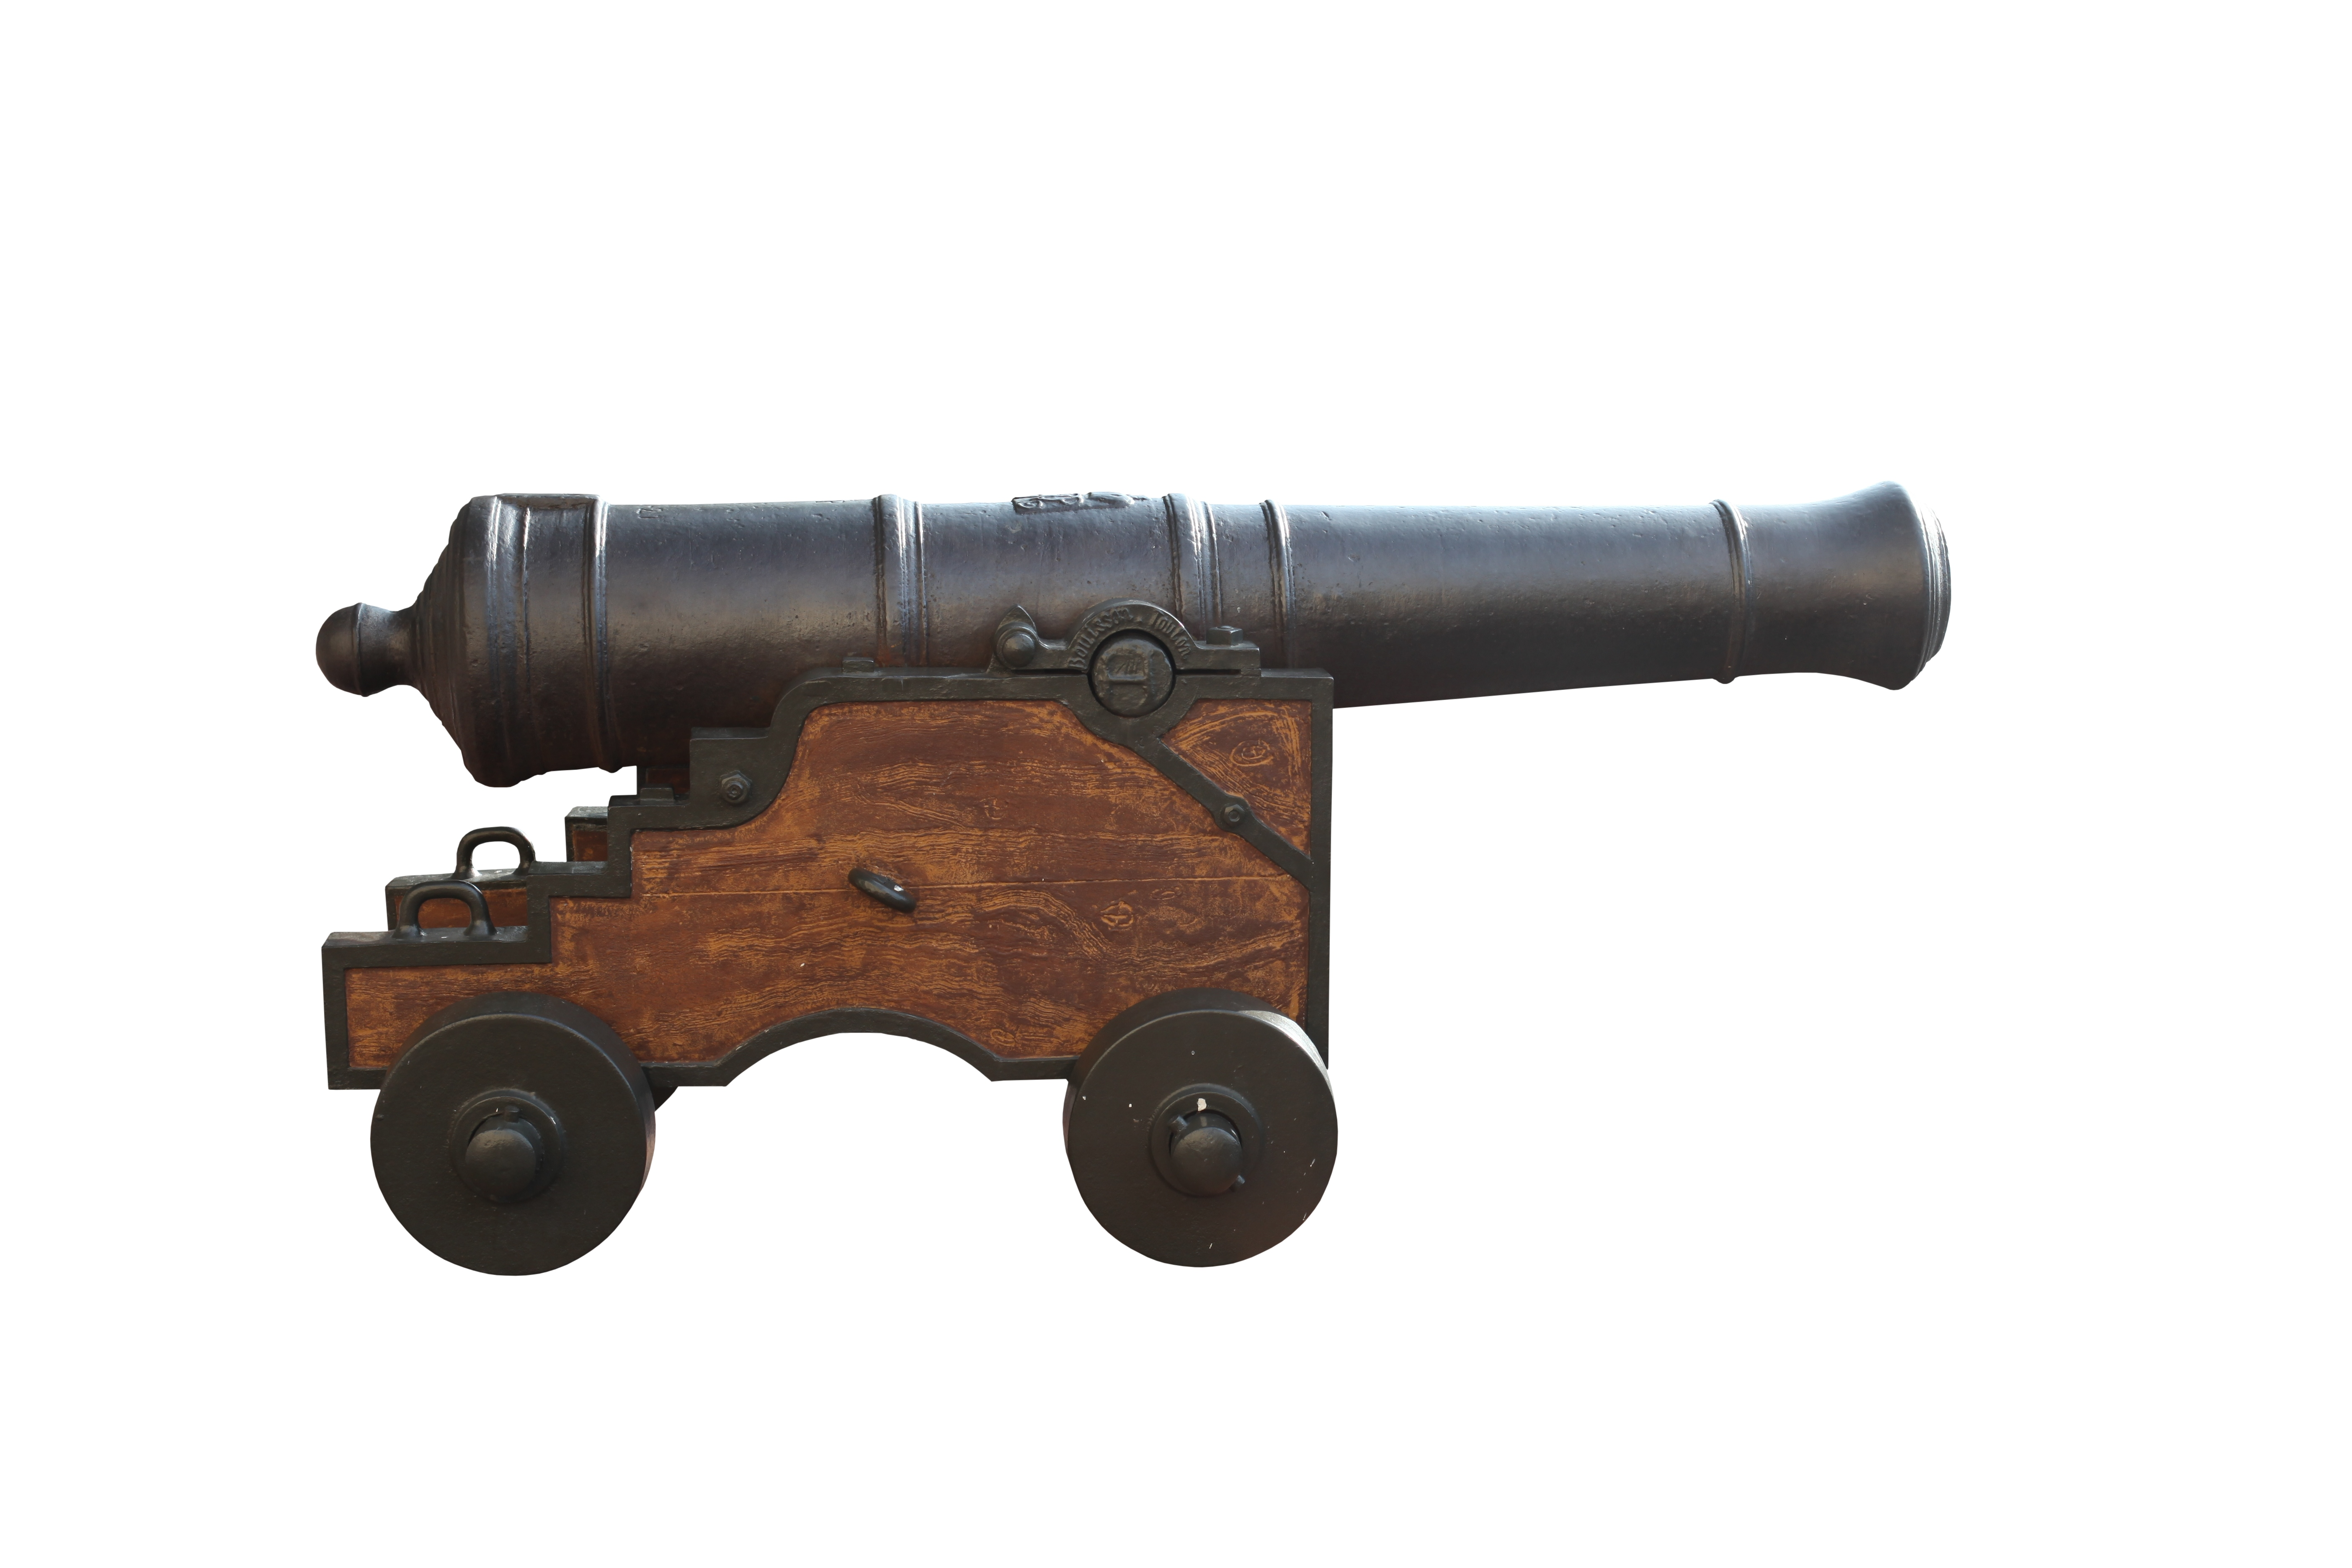 Pirate Weapons - Naval and pirate ships armament